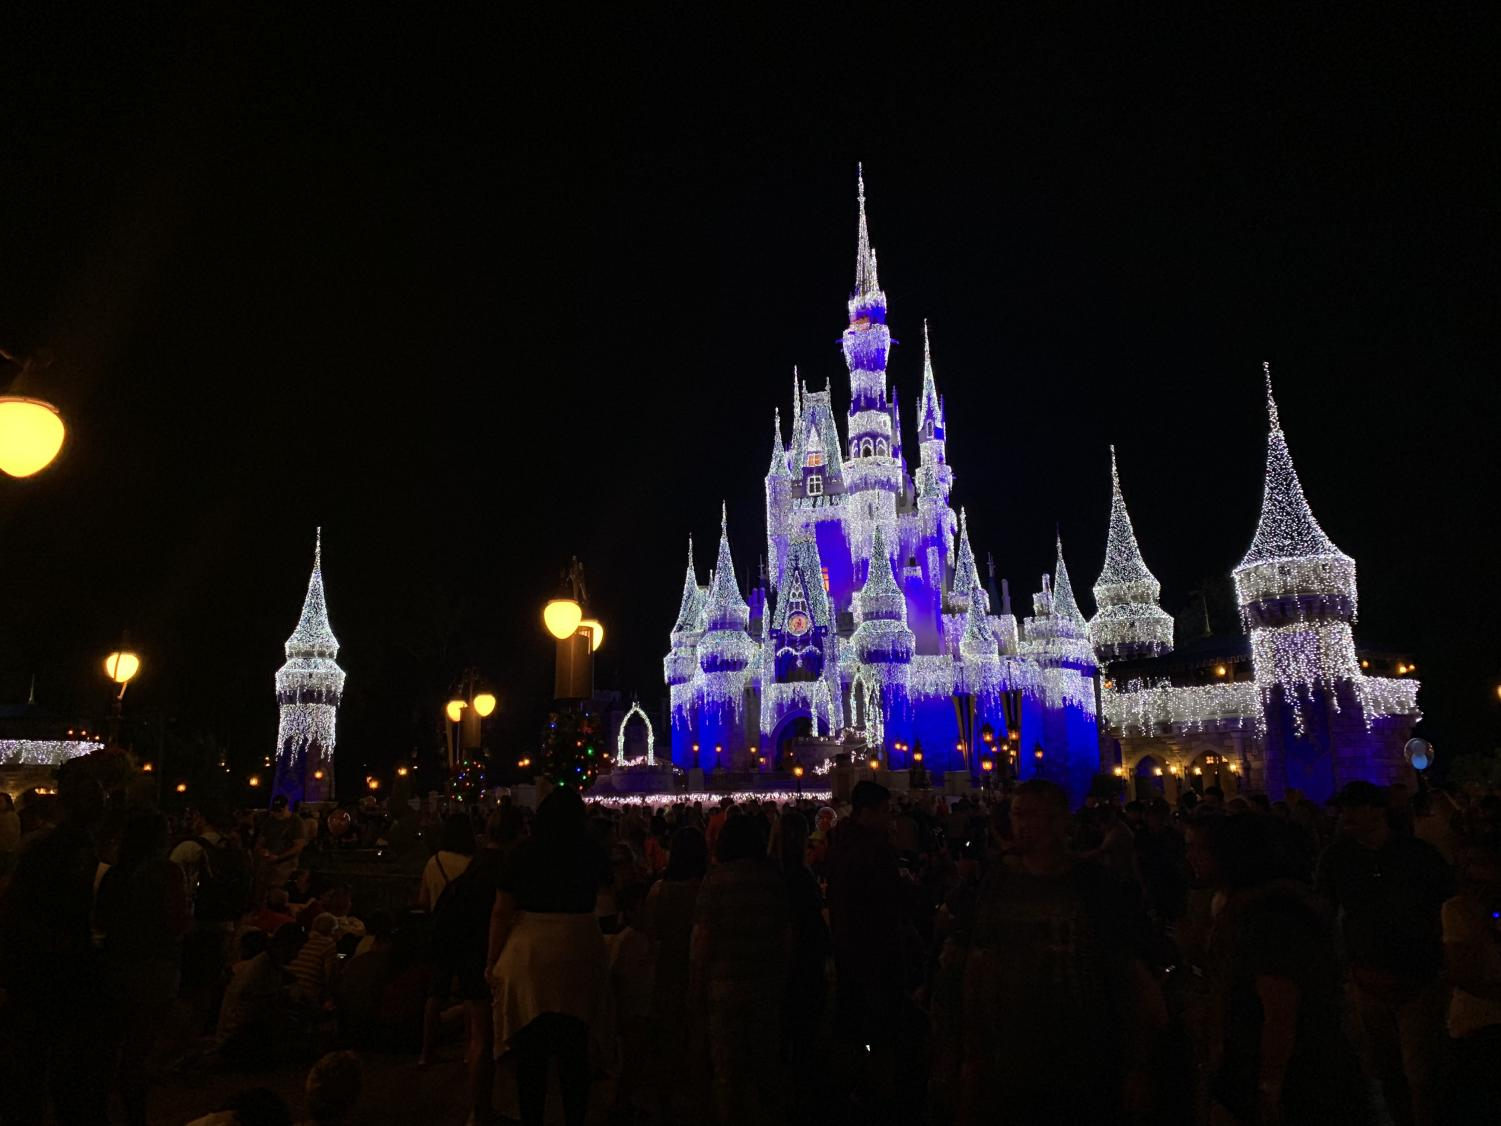 Cinderella's castle lights up the night sky at Disney. Don't forget to catch the Happily Ever After Show, where you'll see this happen.